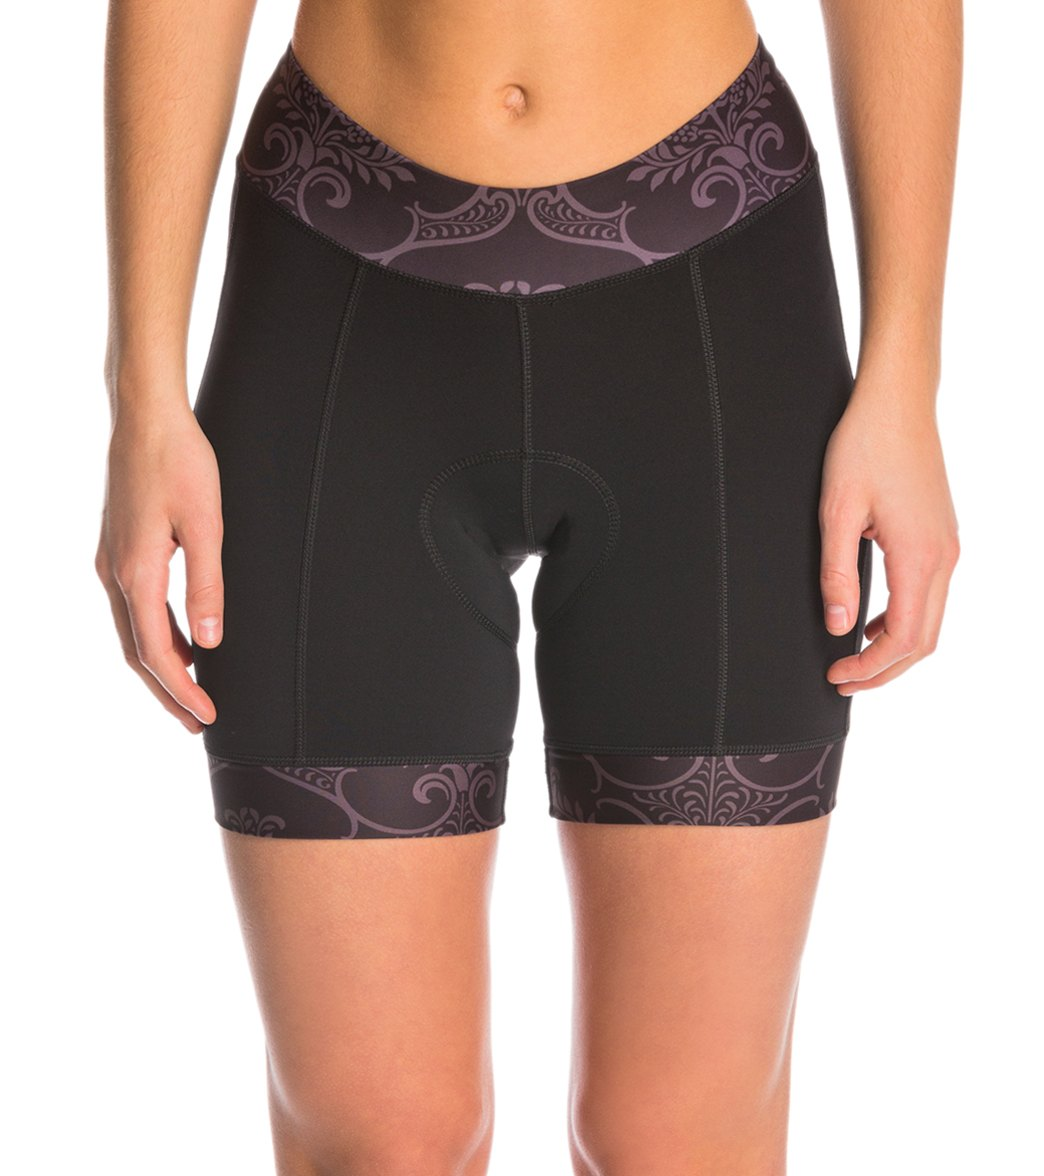 ... Shebeest Women s Triple S Ultimo Go For Baroque Cycling Shorts Play  Video. Play Video 43cadef75